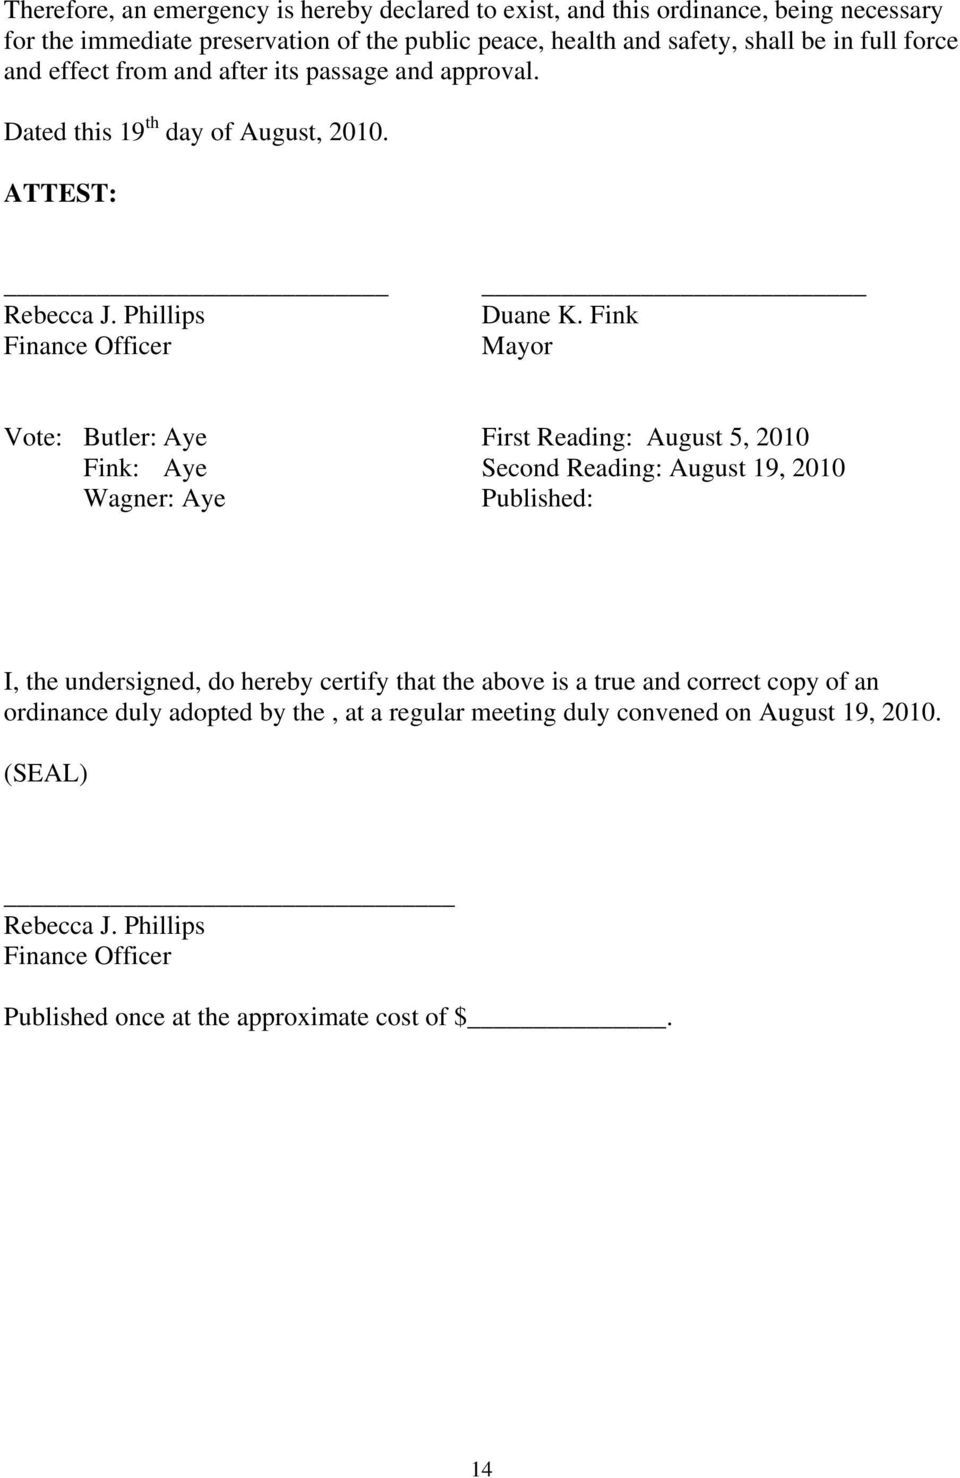 Fink Mayor Vote: Butler: Aye First Reading: August 5, 2010 Fink: Aye Second Reading: August 19, 2010 Wagner: Aye Published: I, the undersigned, do hereby certify that the above